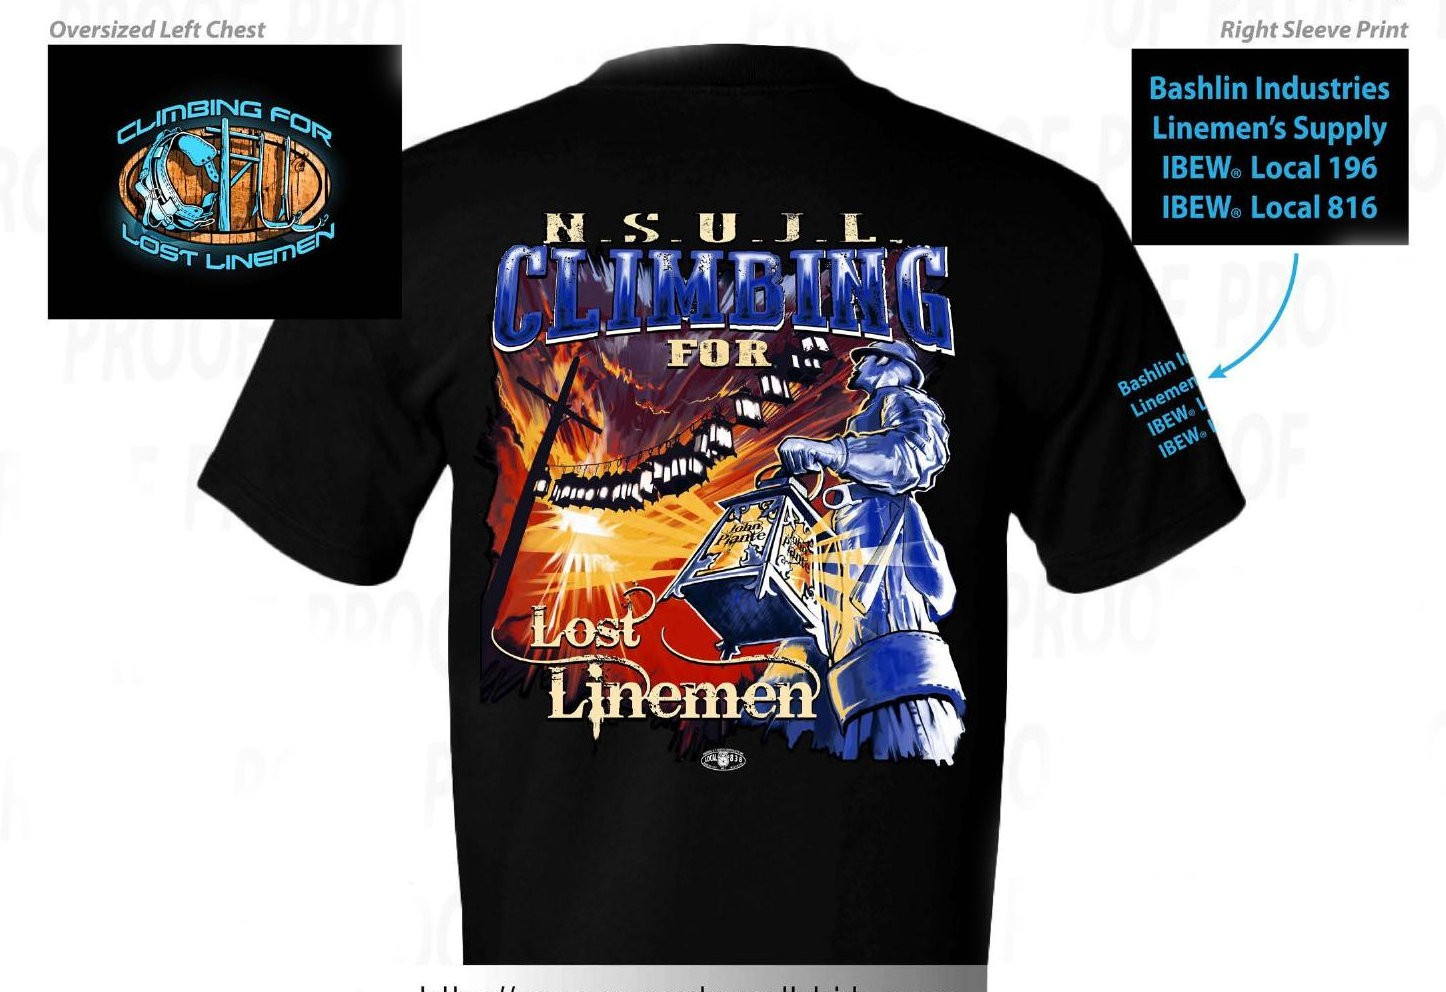 2017 Climbing for Lost Linemen T-shirt